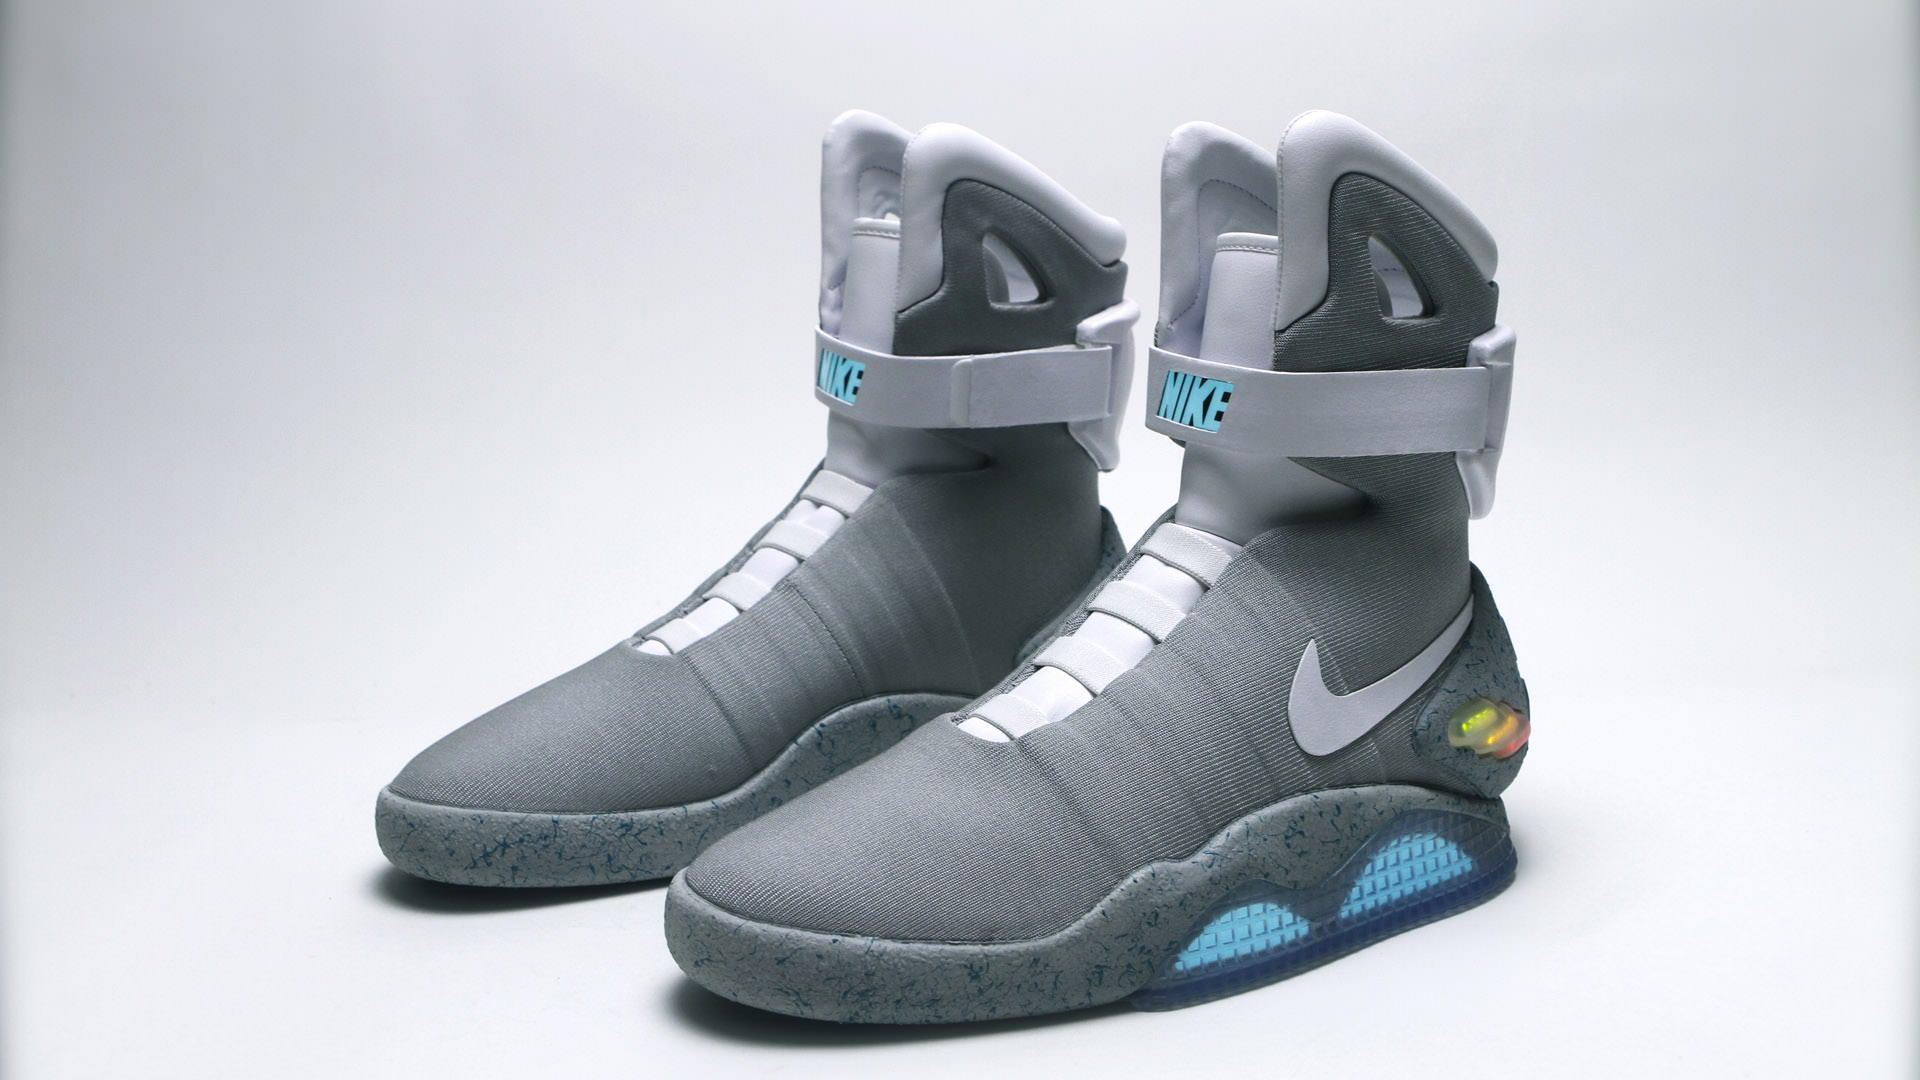 Back to the Future II power laces coming soon, Nike designer says